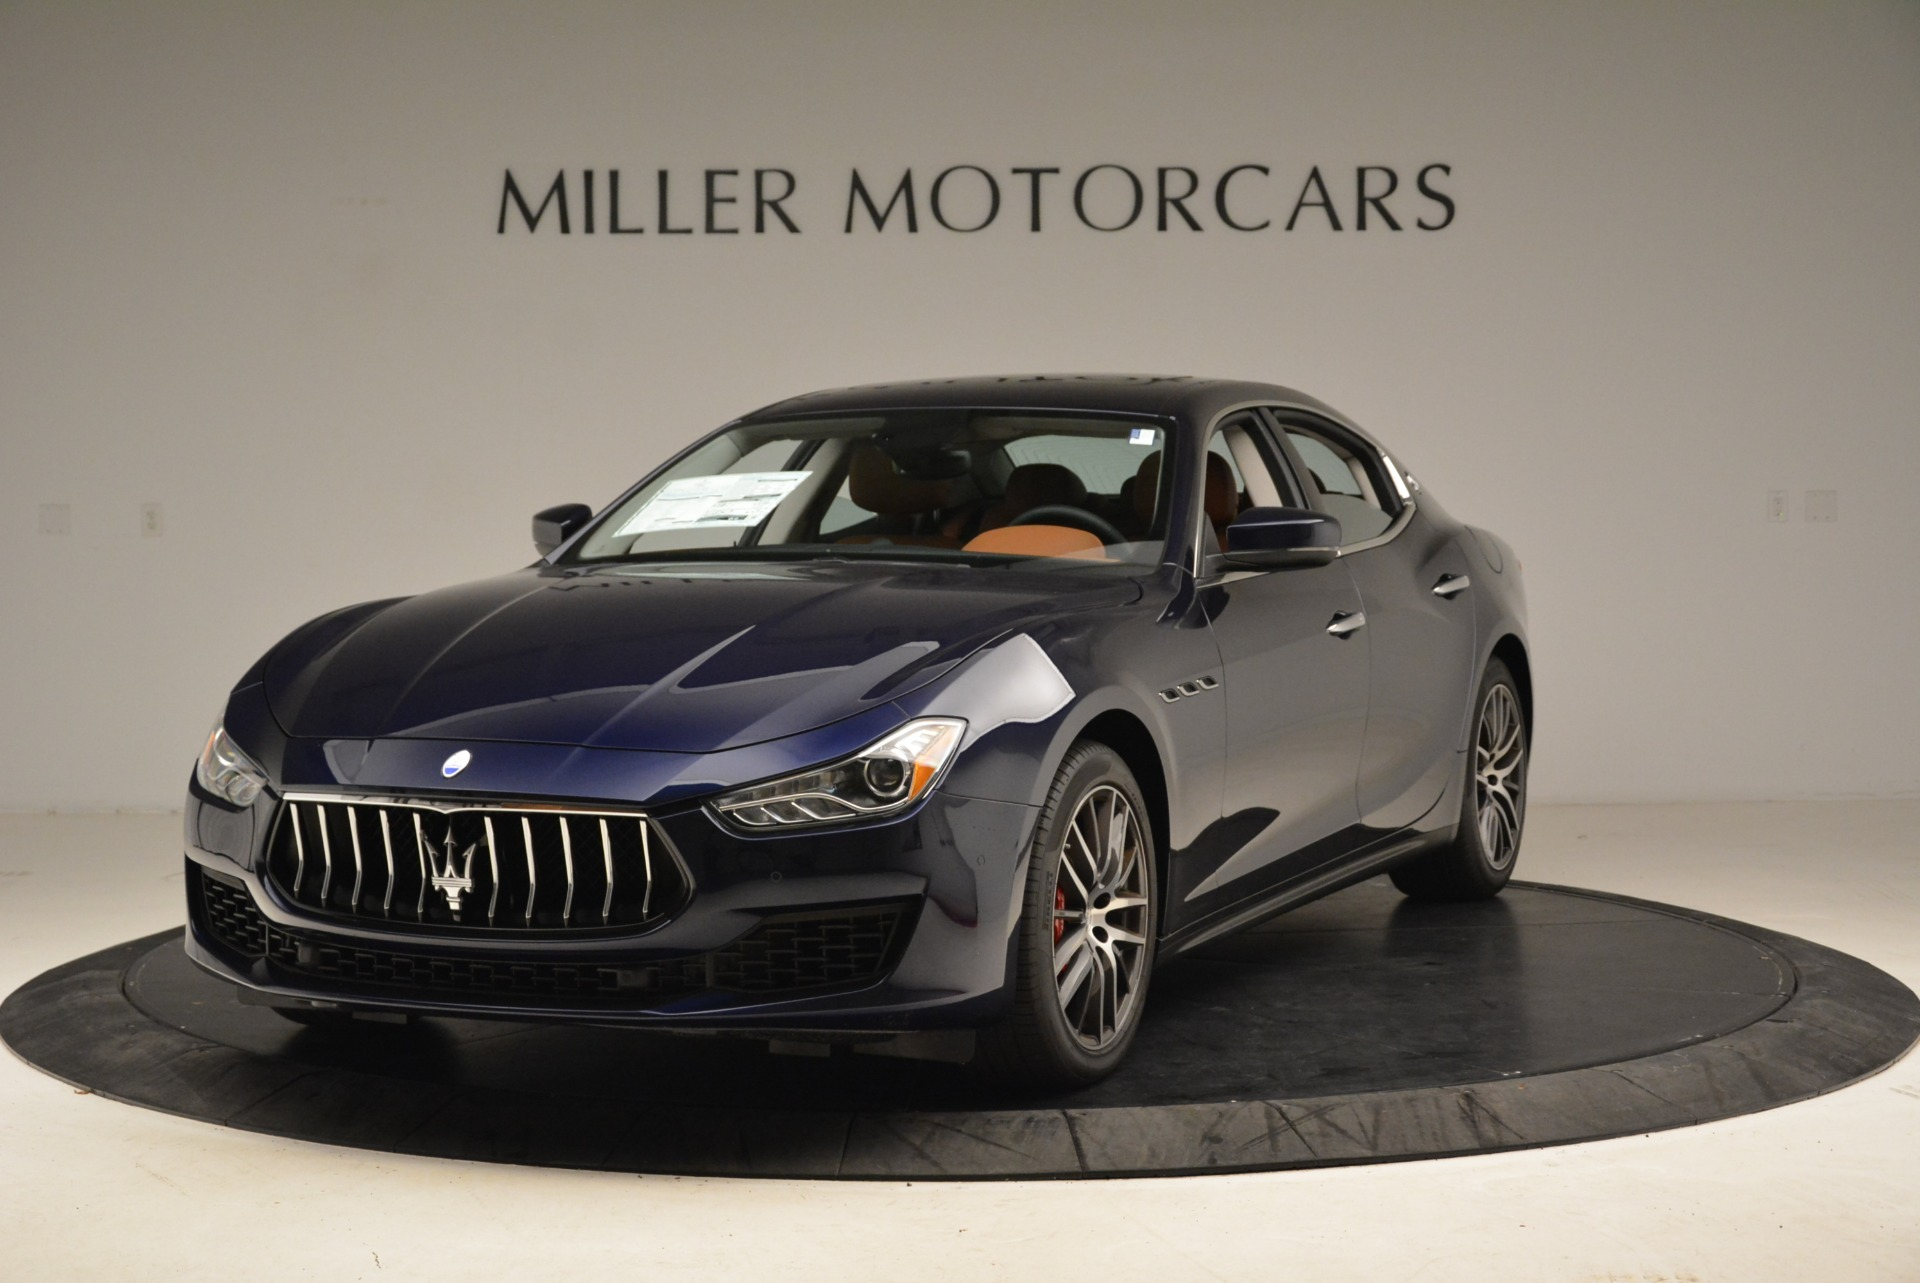 Used 2019 Maserati Ghibli S Q4 for sale $61,900 at Bentley Greenwich in Greenwich CT 06830 1